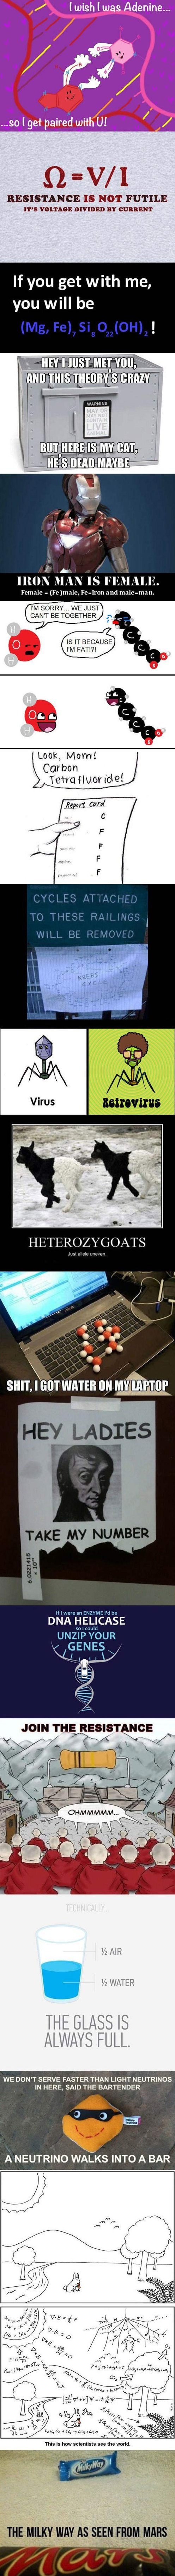 Science Humor